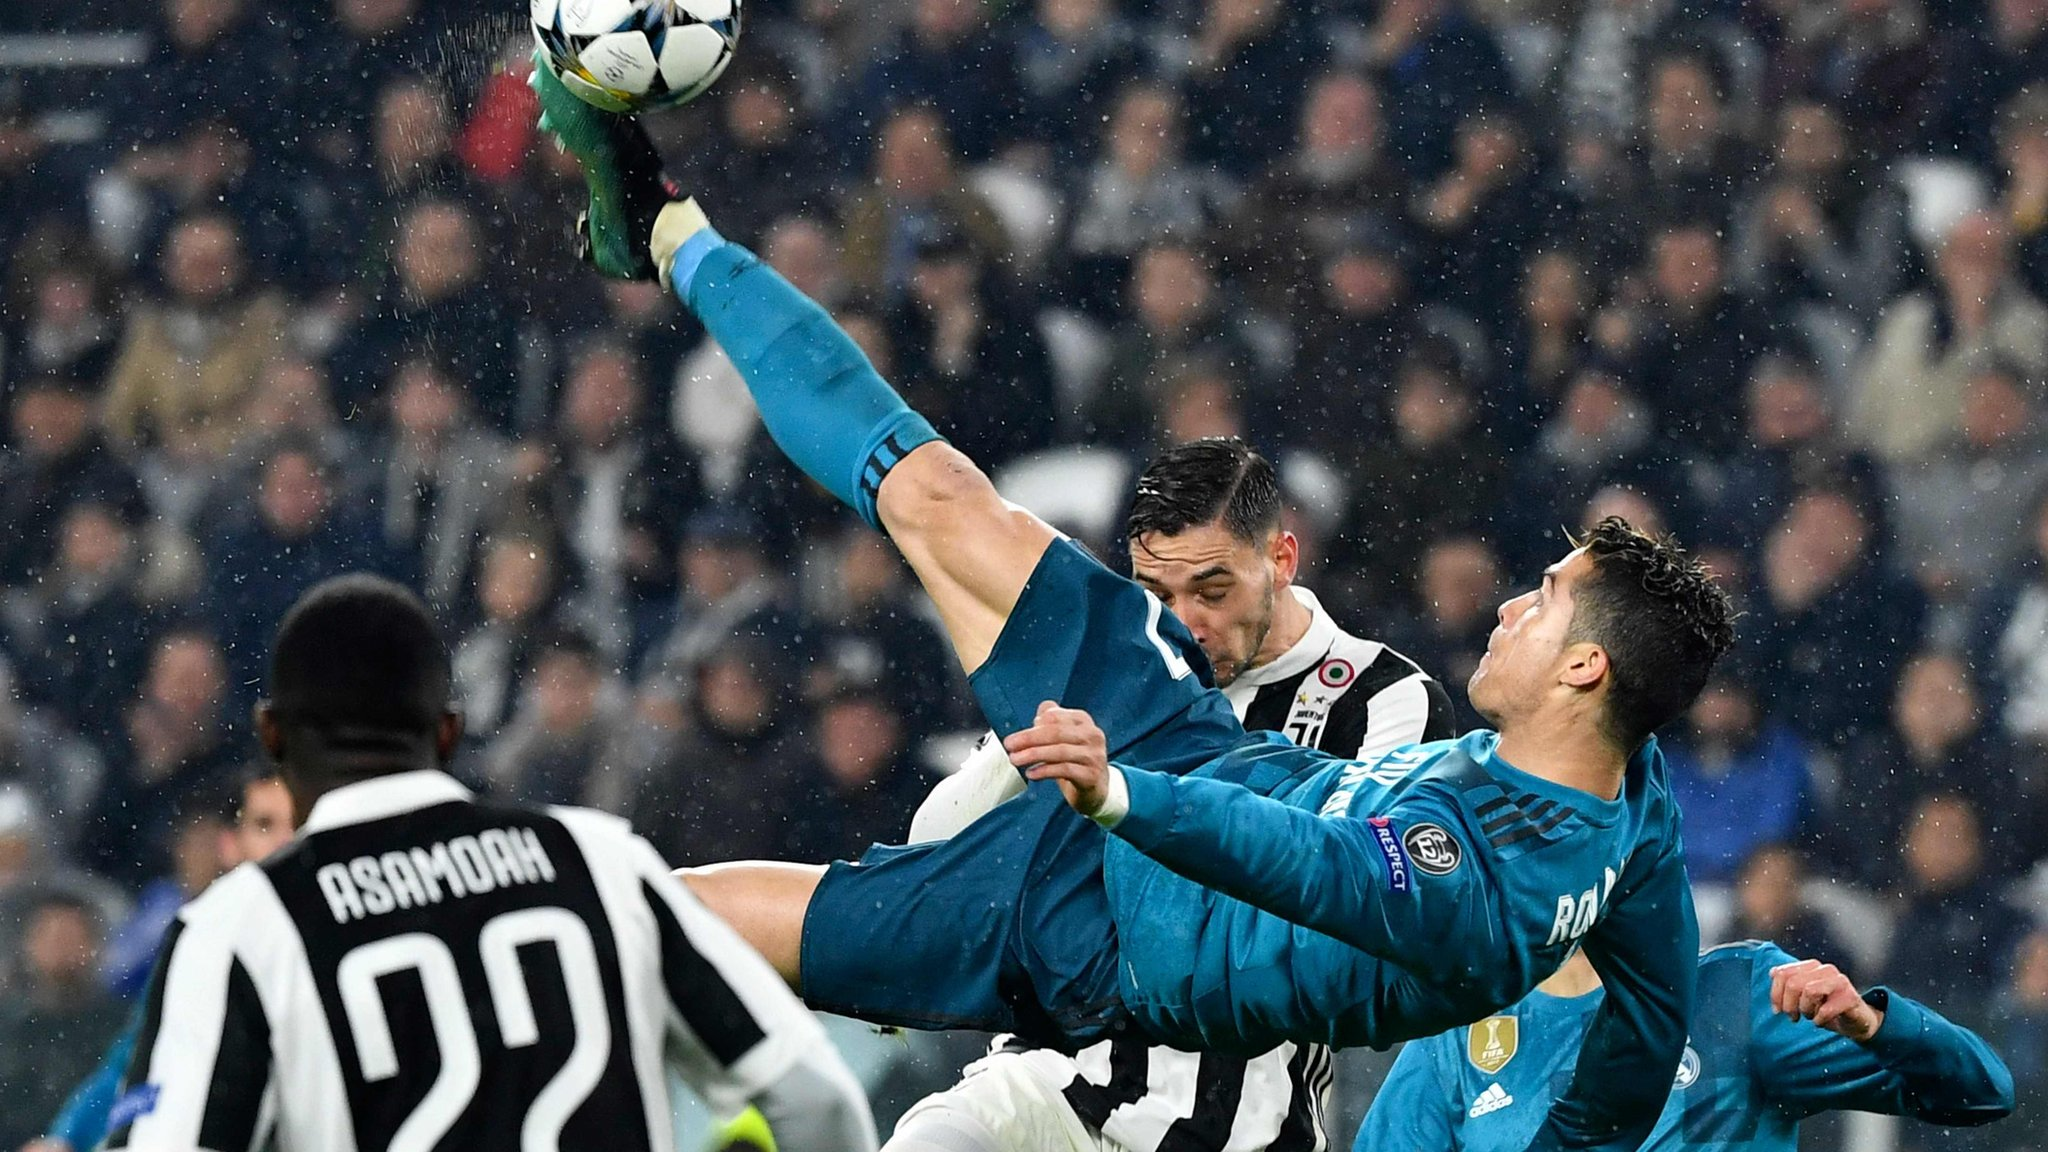 The night Juventus rose to applaud Ronaldo - how good was his bicycle kick? Vote now